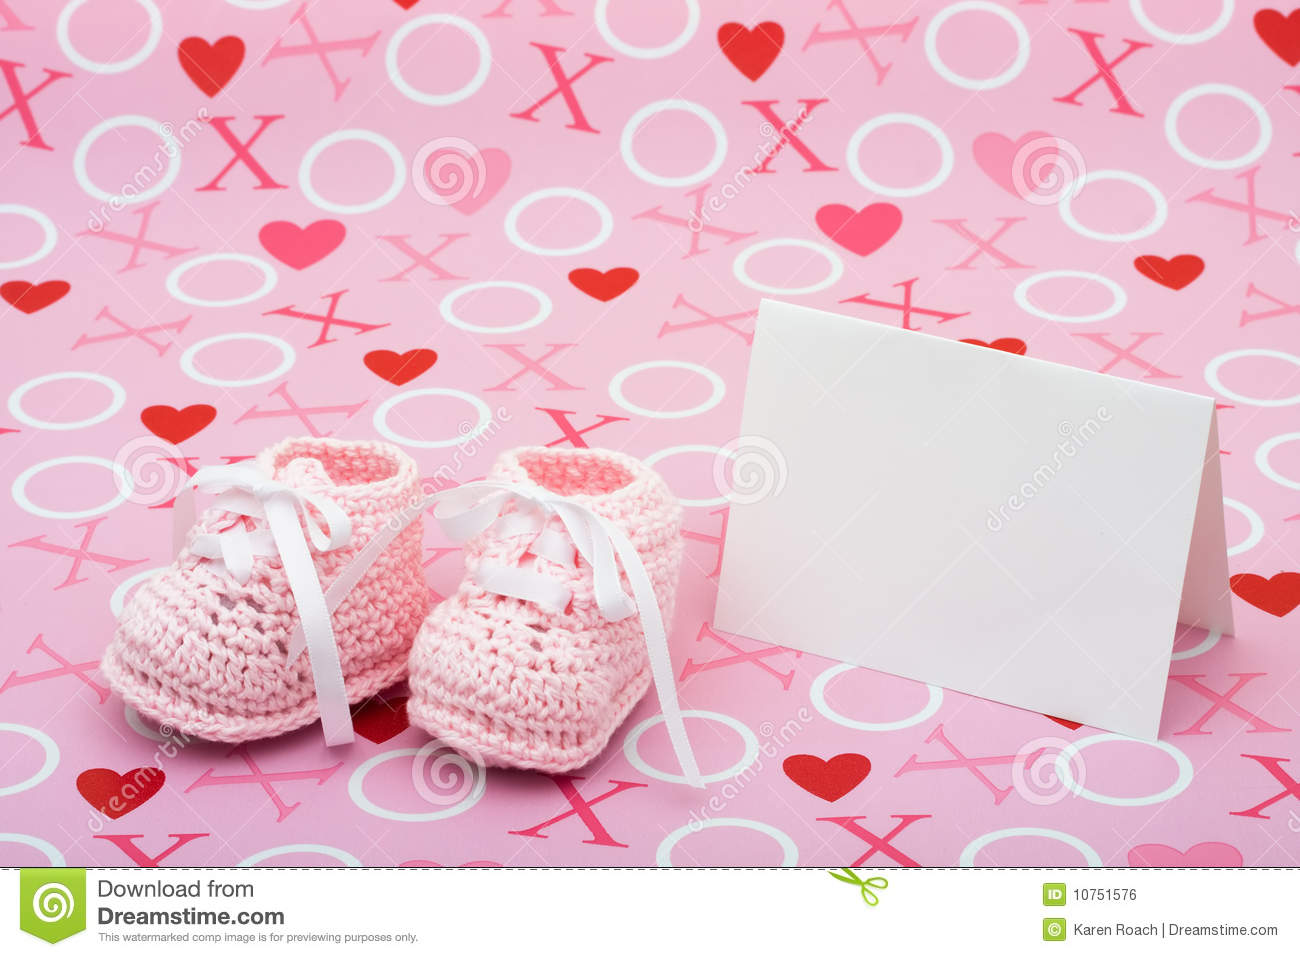 Wallpapers 3d Hello Kitty Gratis Baby Shower Message Royalty Free Stock Image Image 10751576